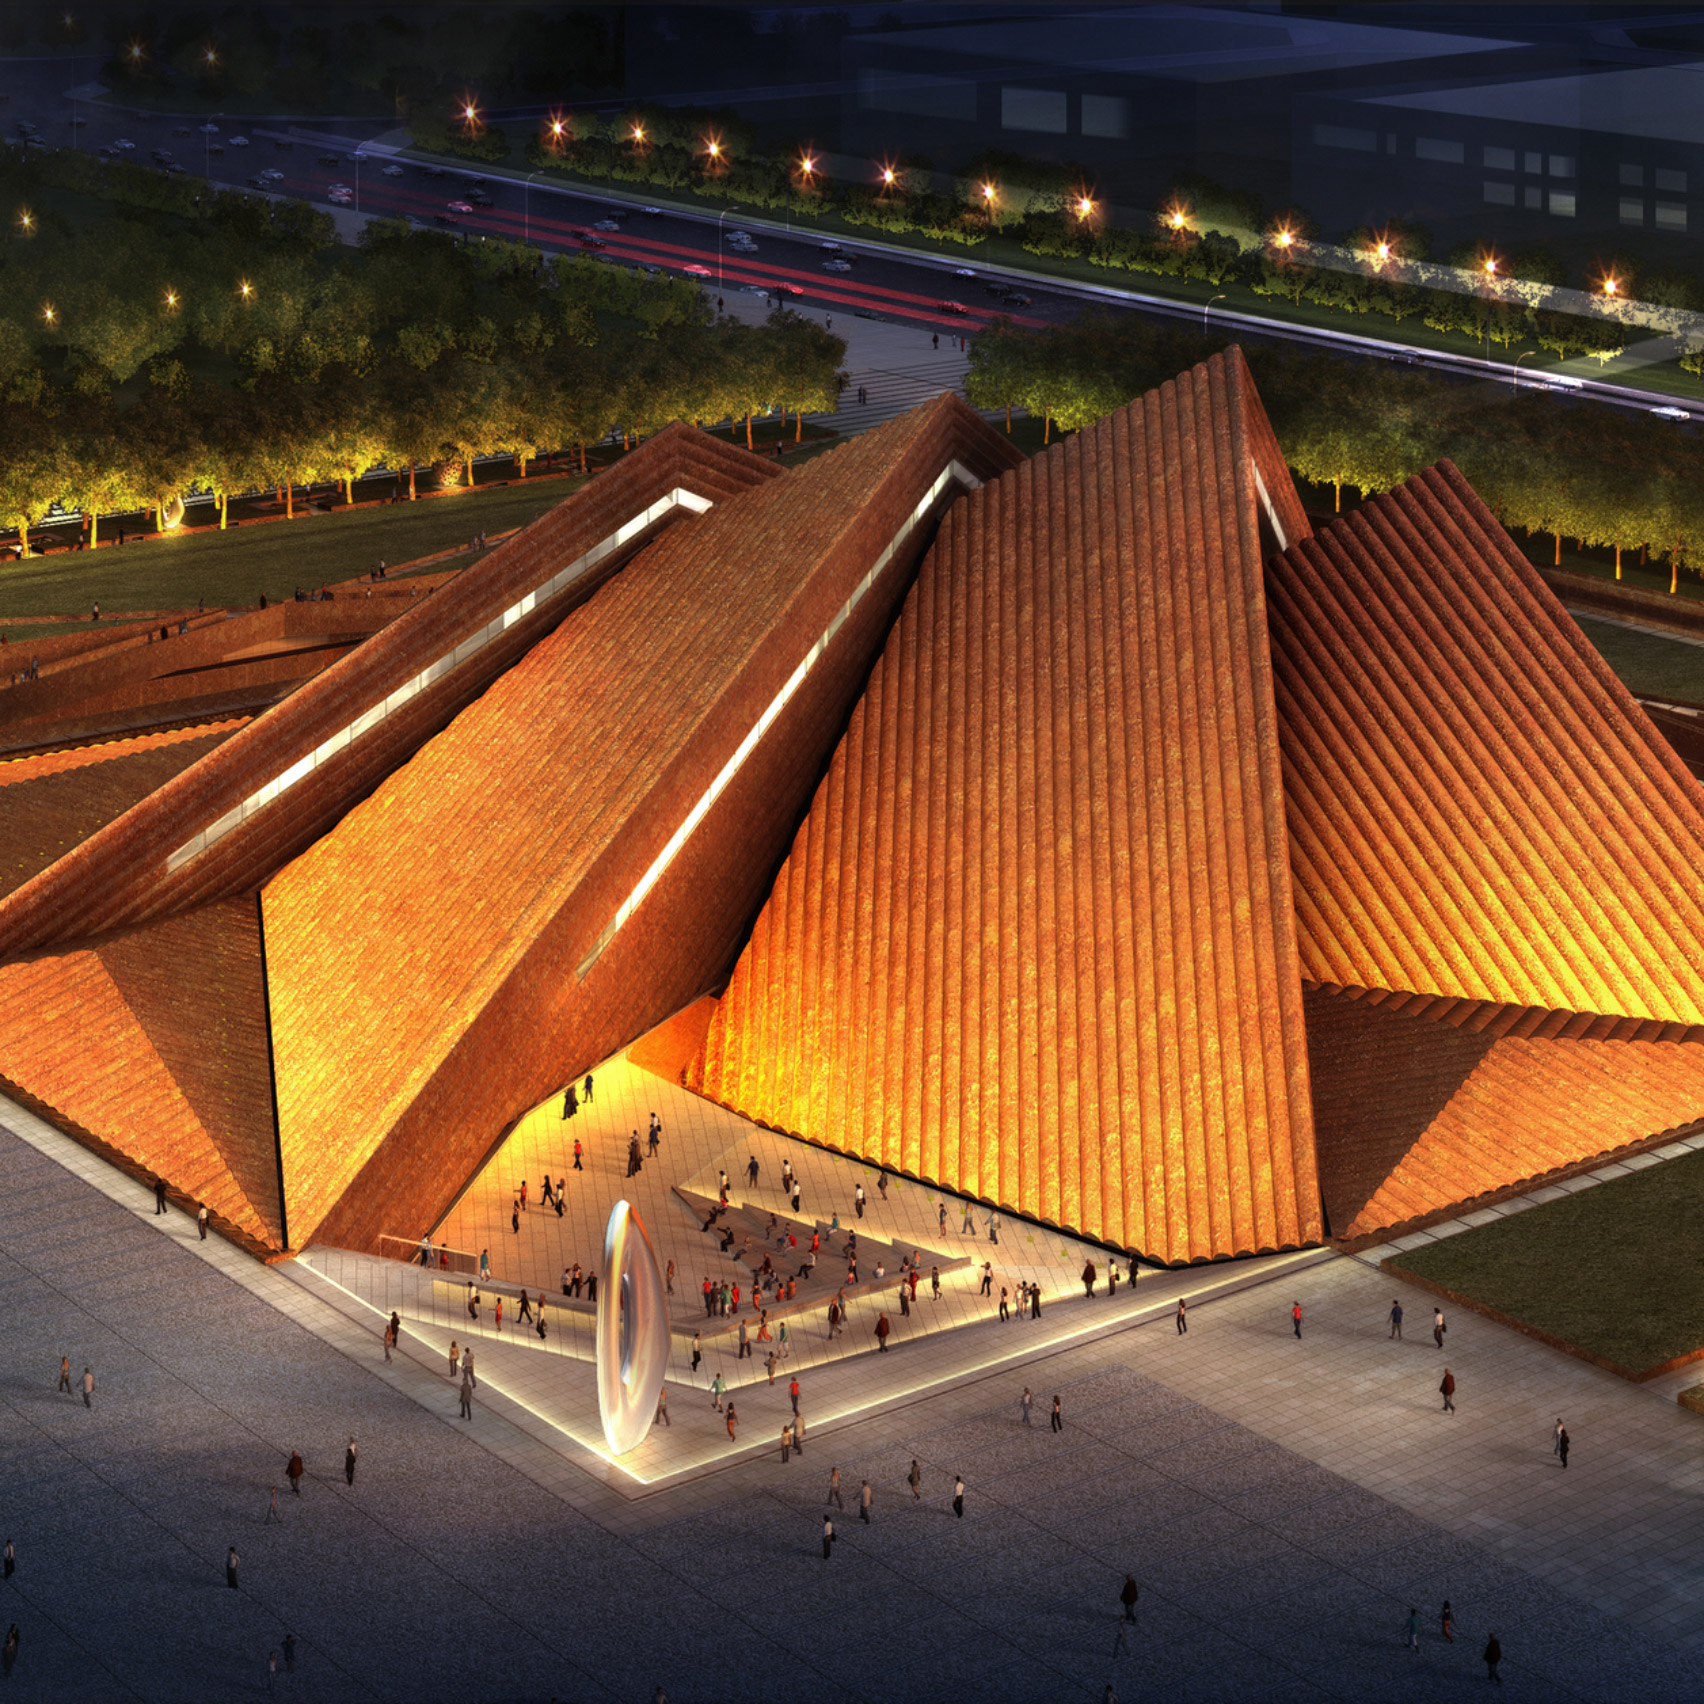 12 new buildings to look forward to in 2020: Datong Art Museum by Foster + Partners